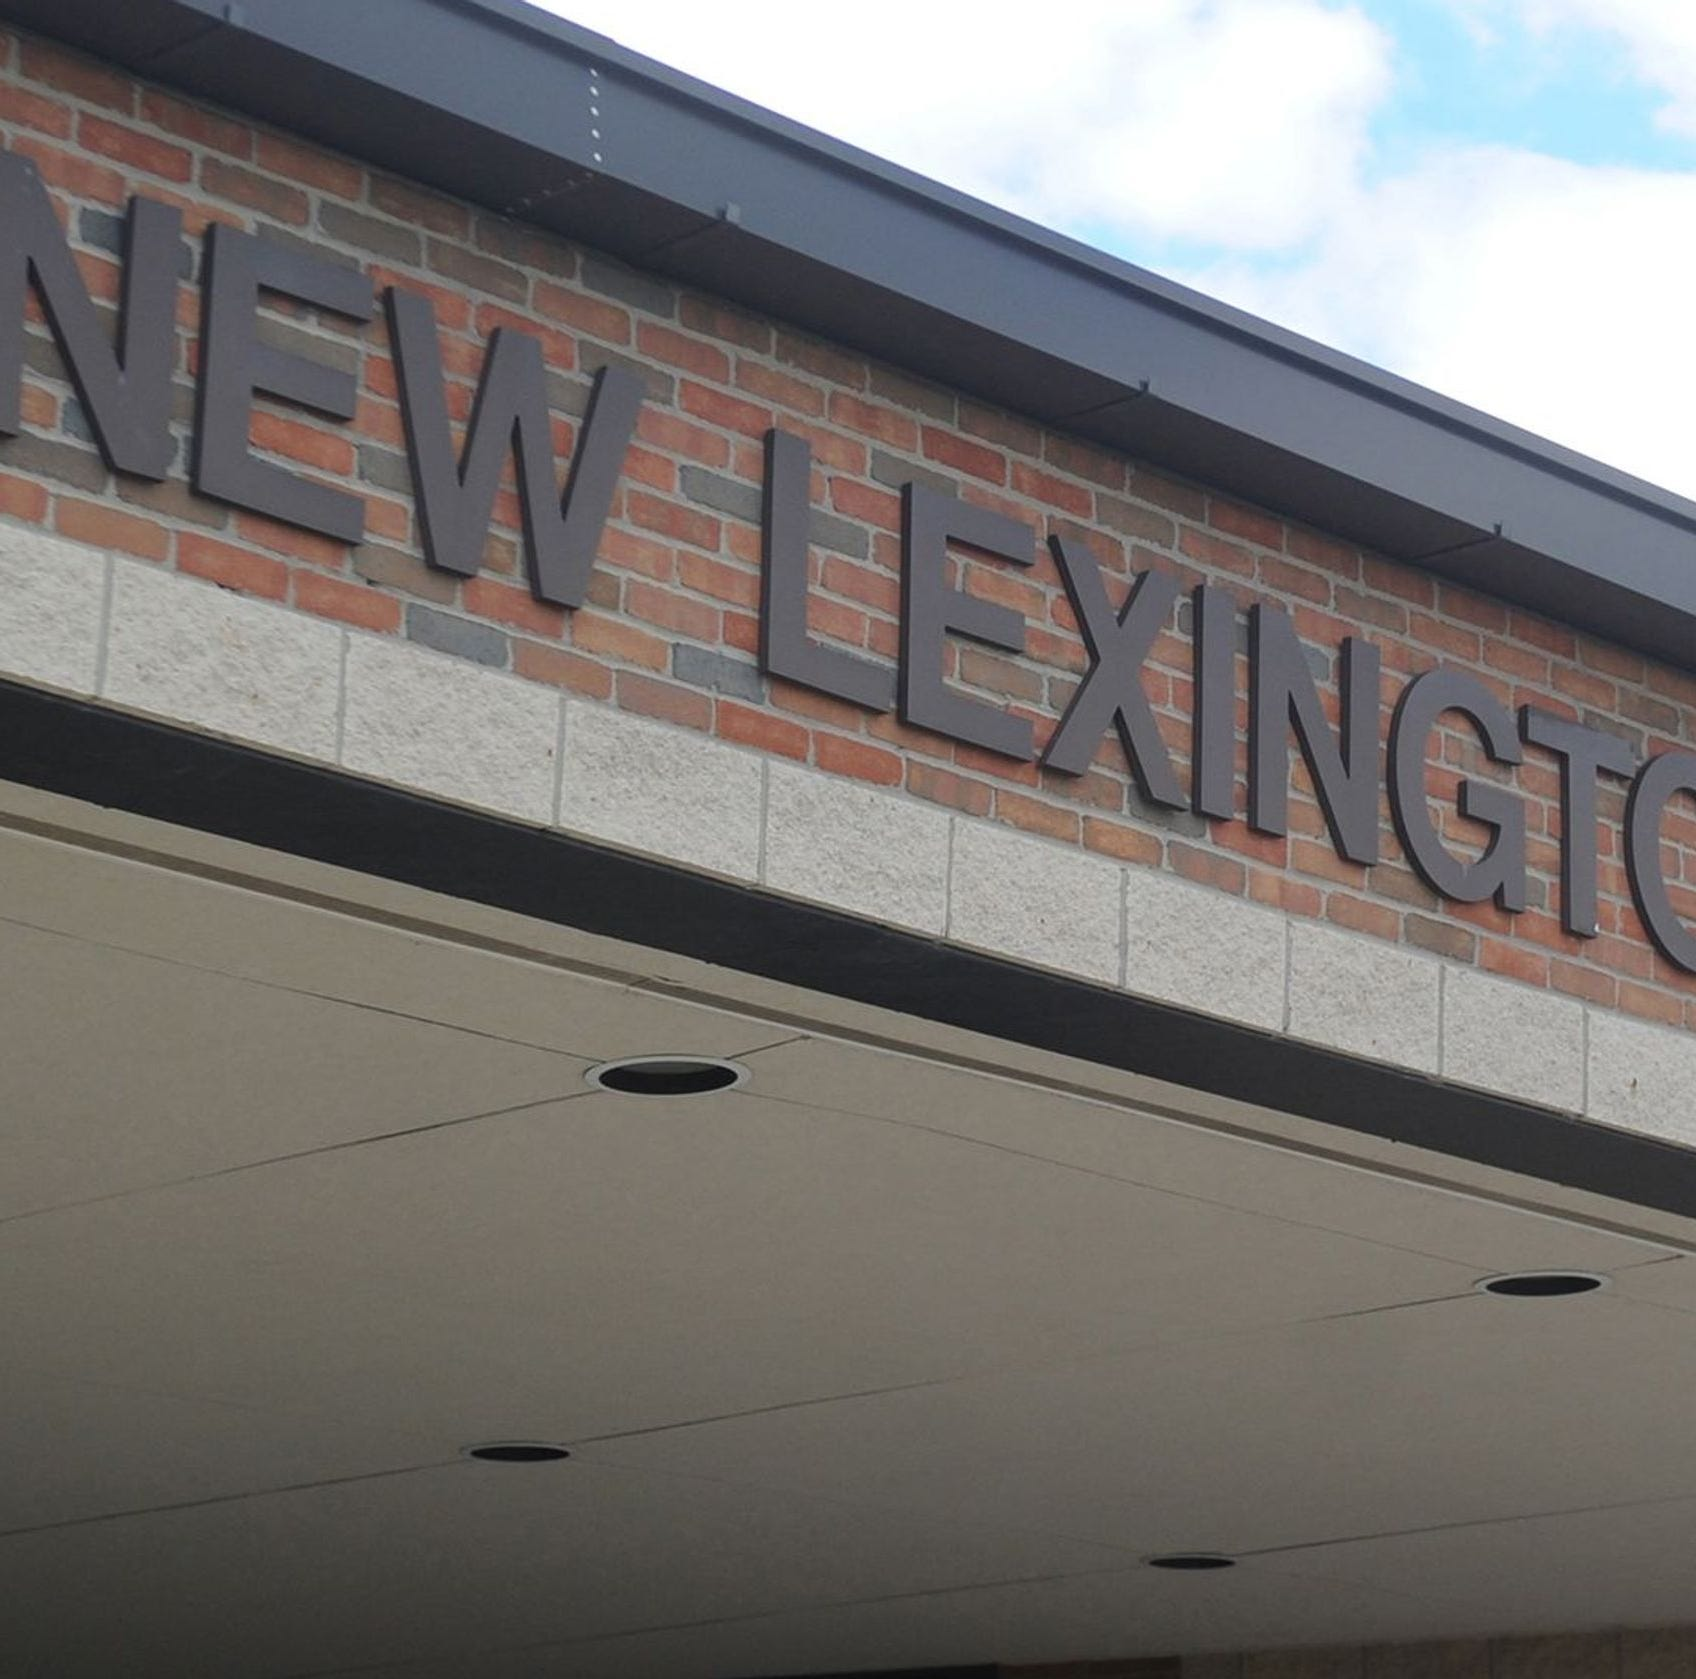 No credible info found following online threat to New Lex school